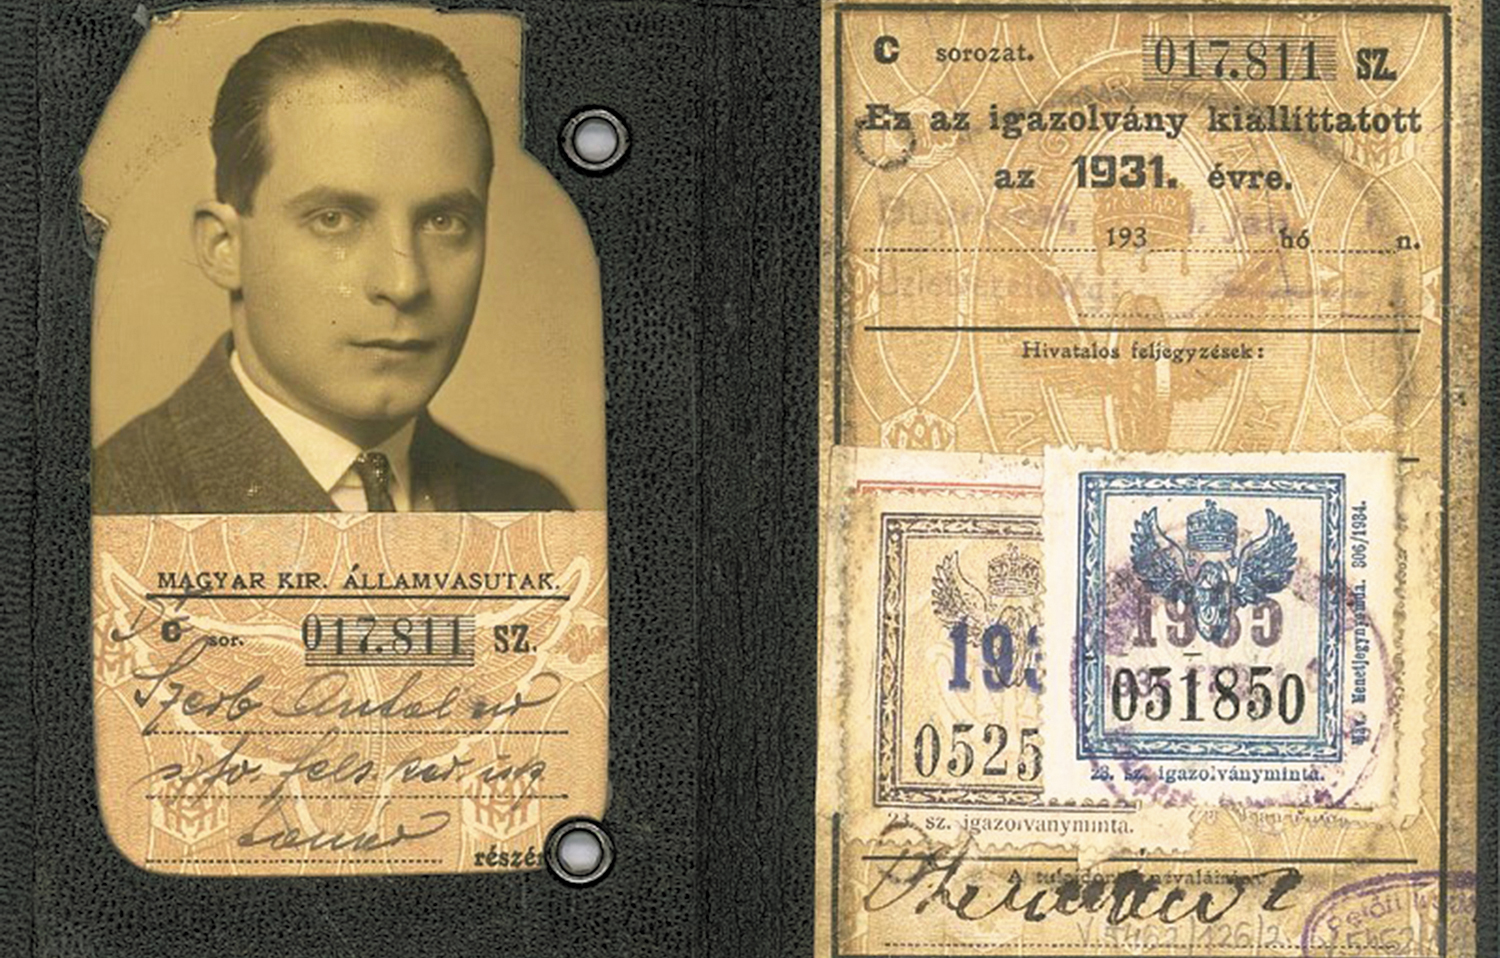 Antal-Szerb's-passport-1931